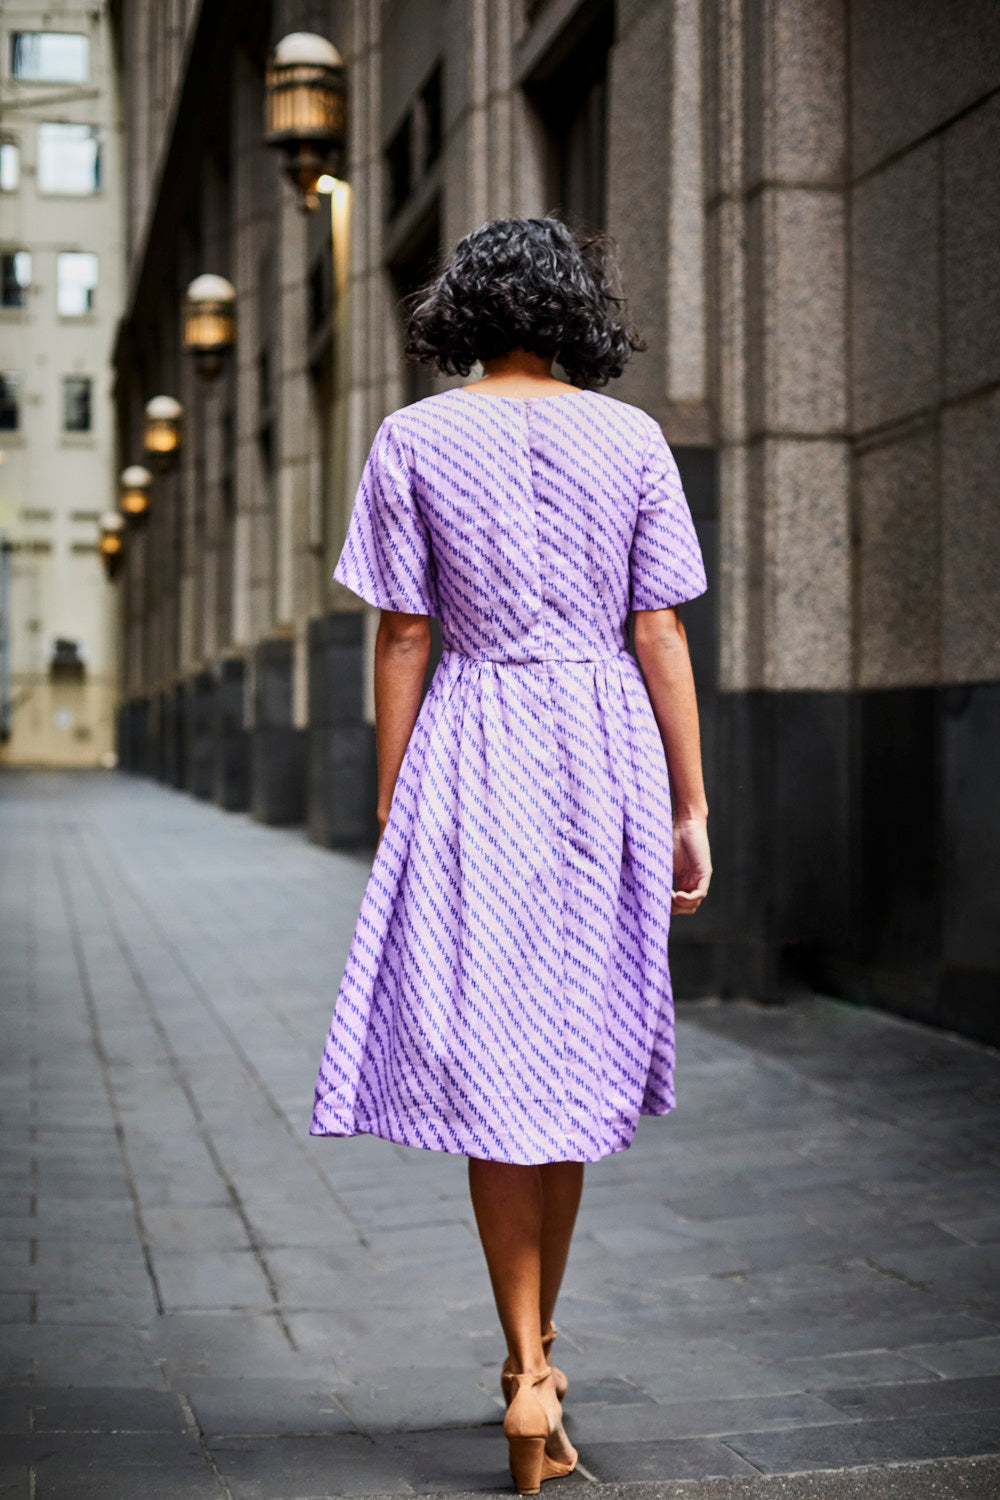 DEVOI LINEN PRINTED DOROTHY DRESS, SHORT SLEEVED DRESS. LILAC DRESS. PRINTED DRESS. DRESS DESIGNED IN MELBOURNE